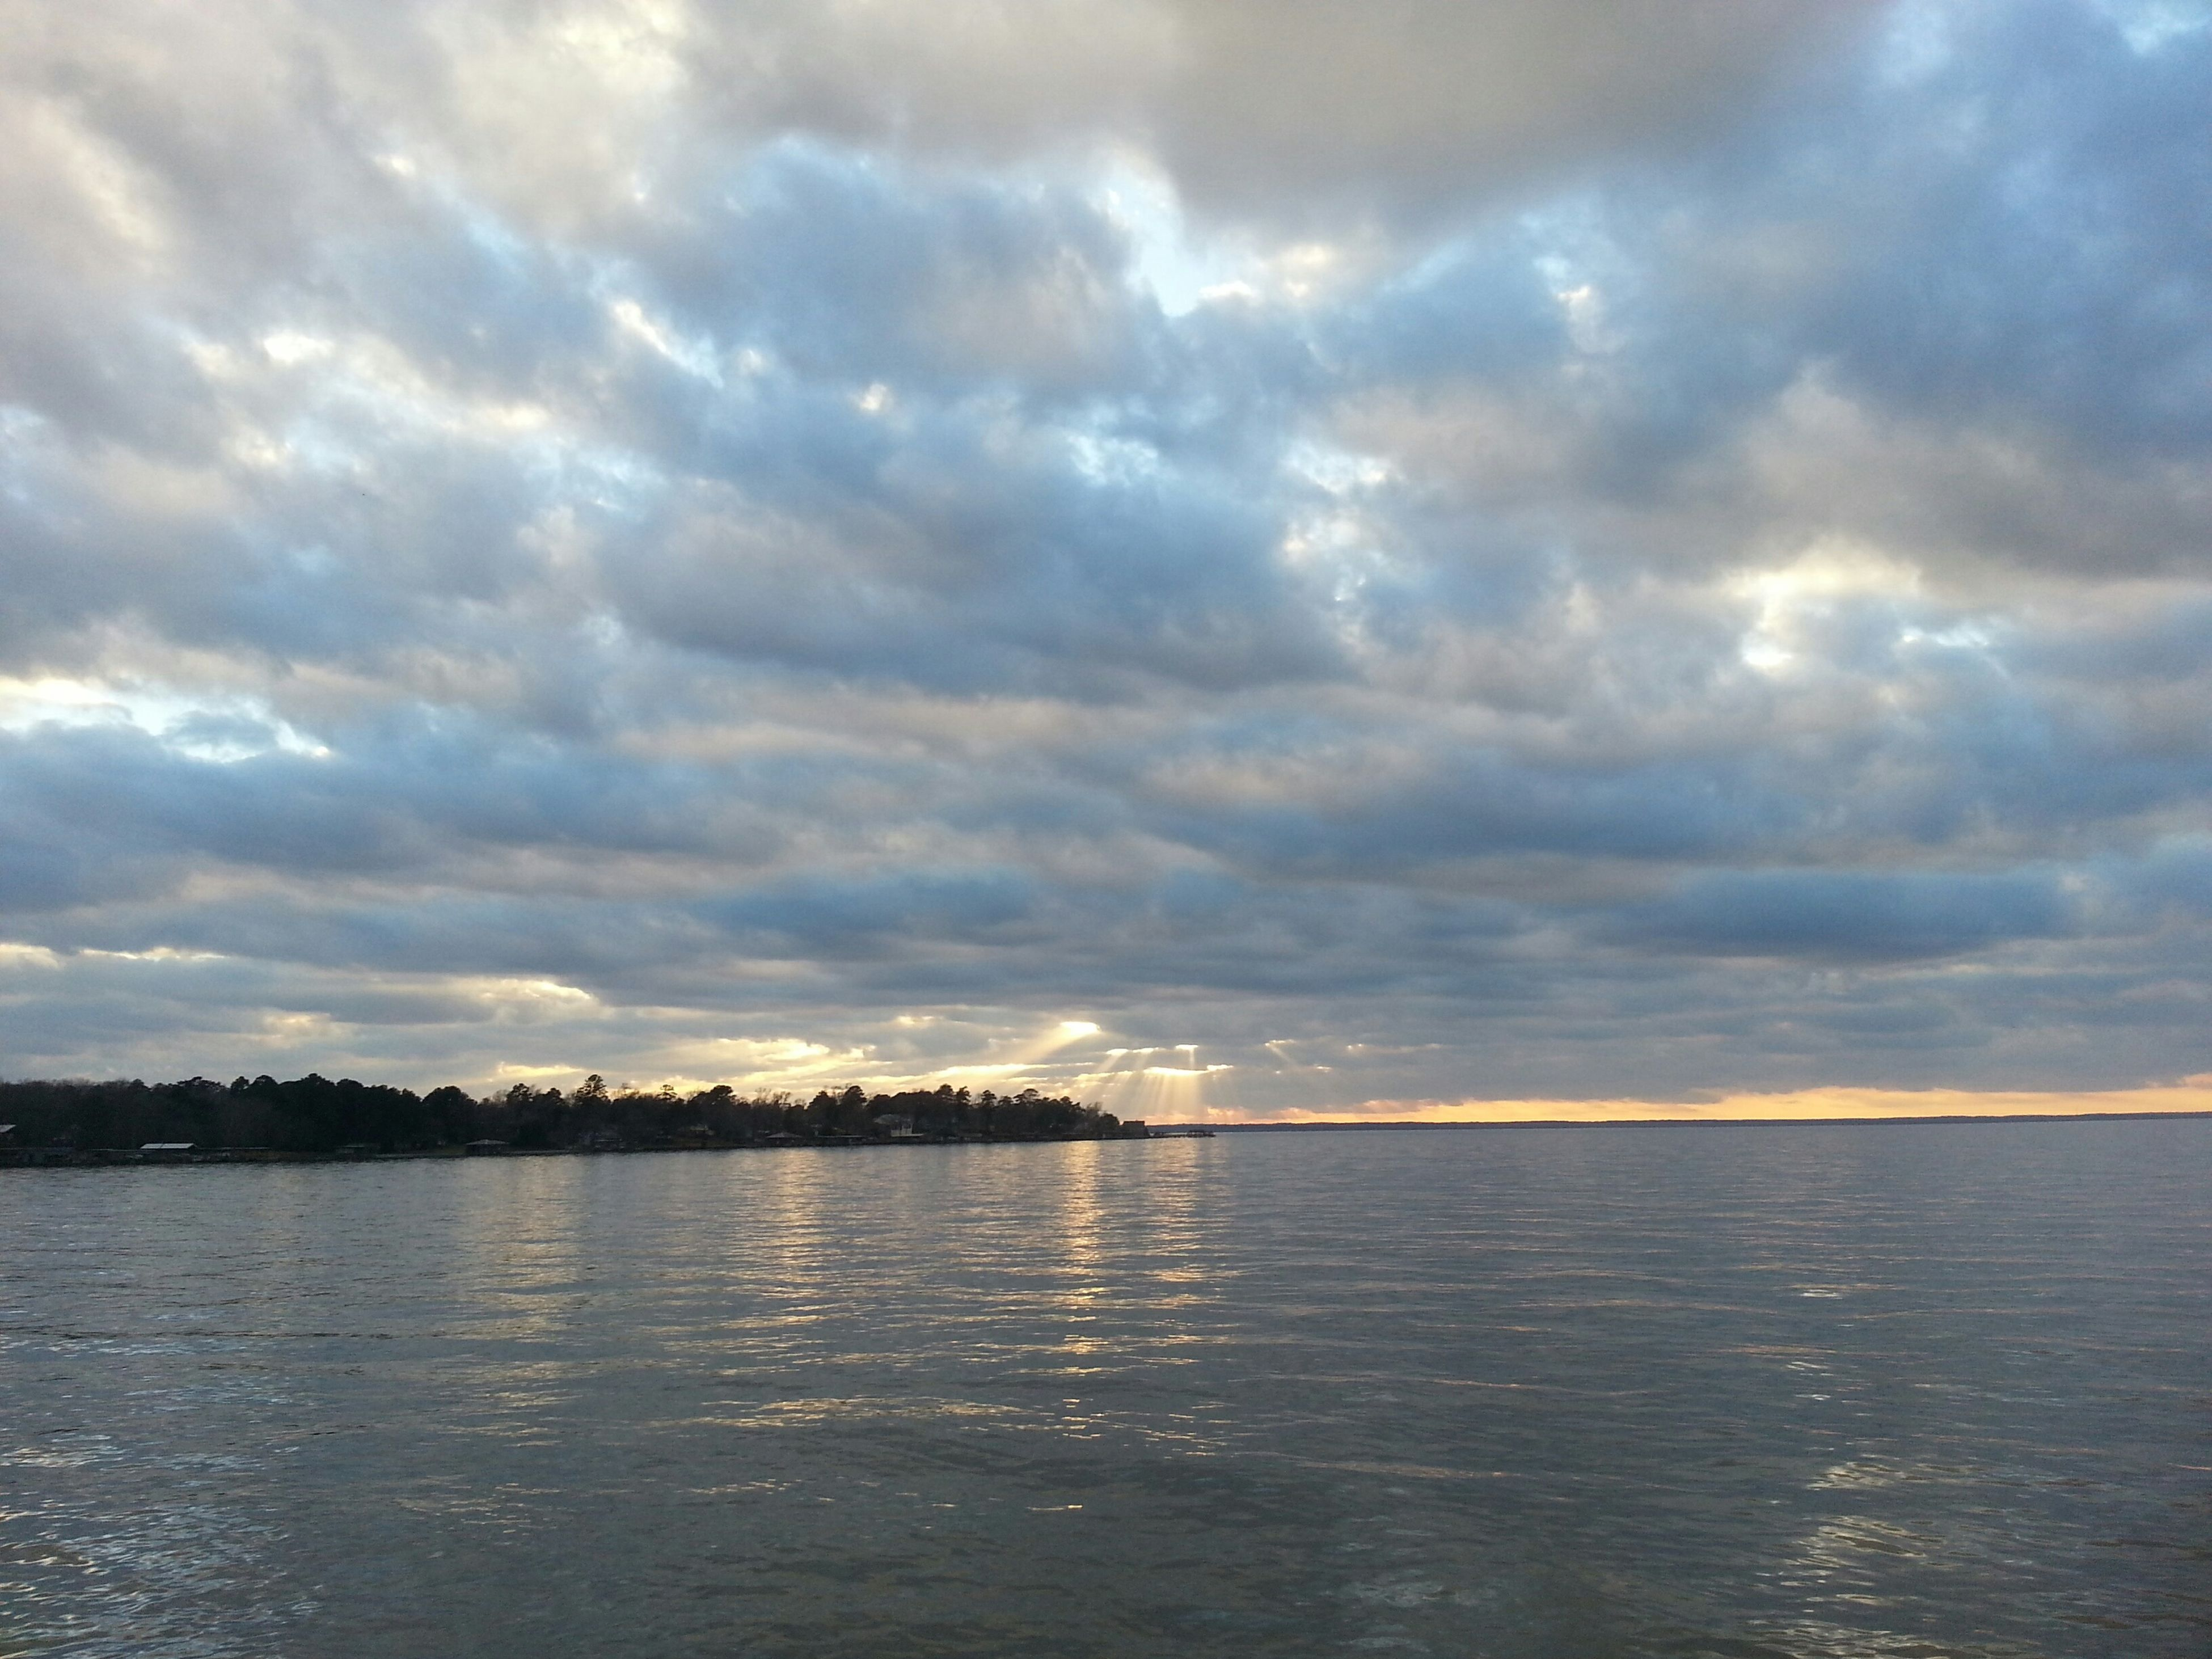 water, sky, cloud - sky, waterfront, cloudy, tranquil scene, scenics, tranquility, beauty in nature, sea, nature, weather, cloud, overcast, idyllic, sunset, reflection, rippled, lake, storm cloud